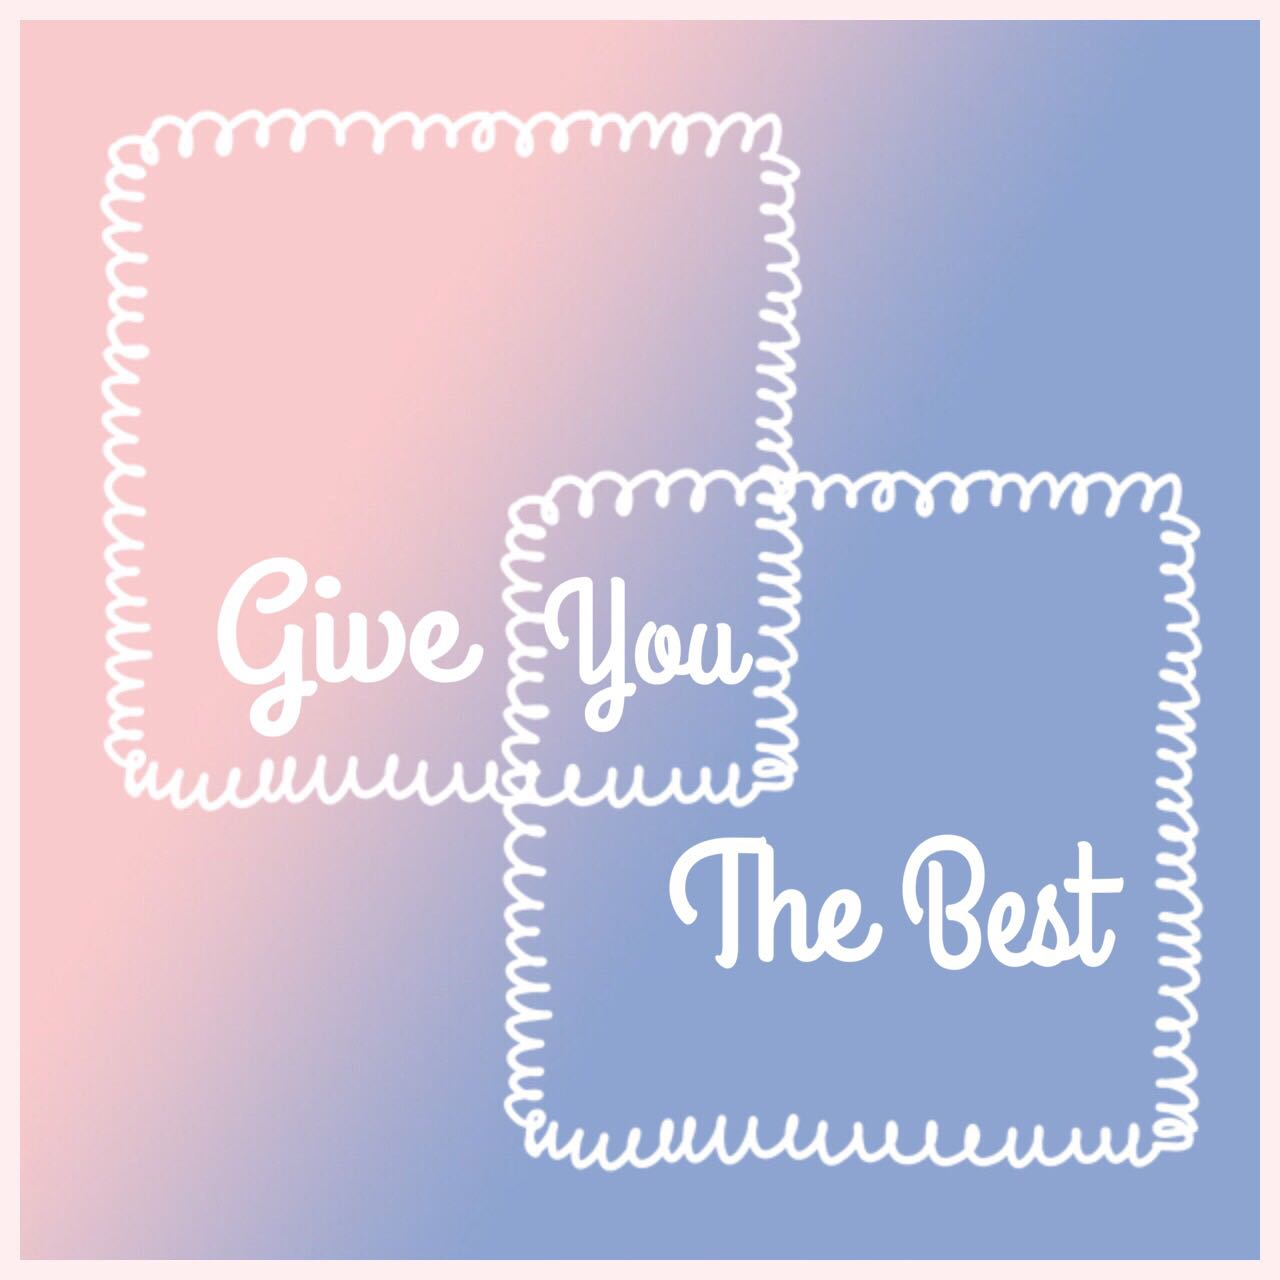 giveuthebest